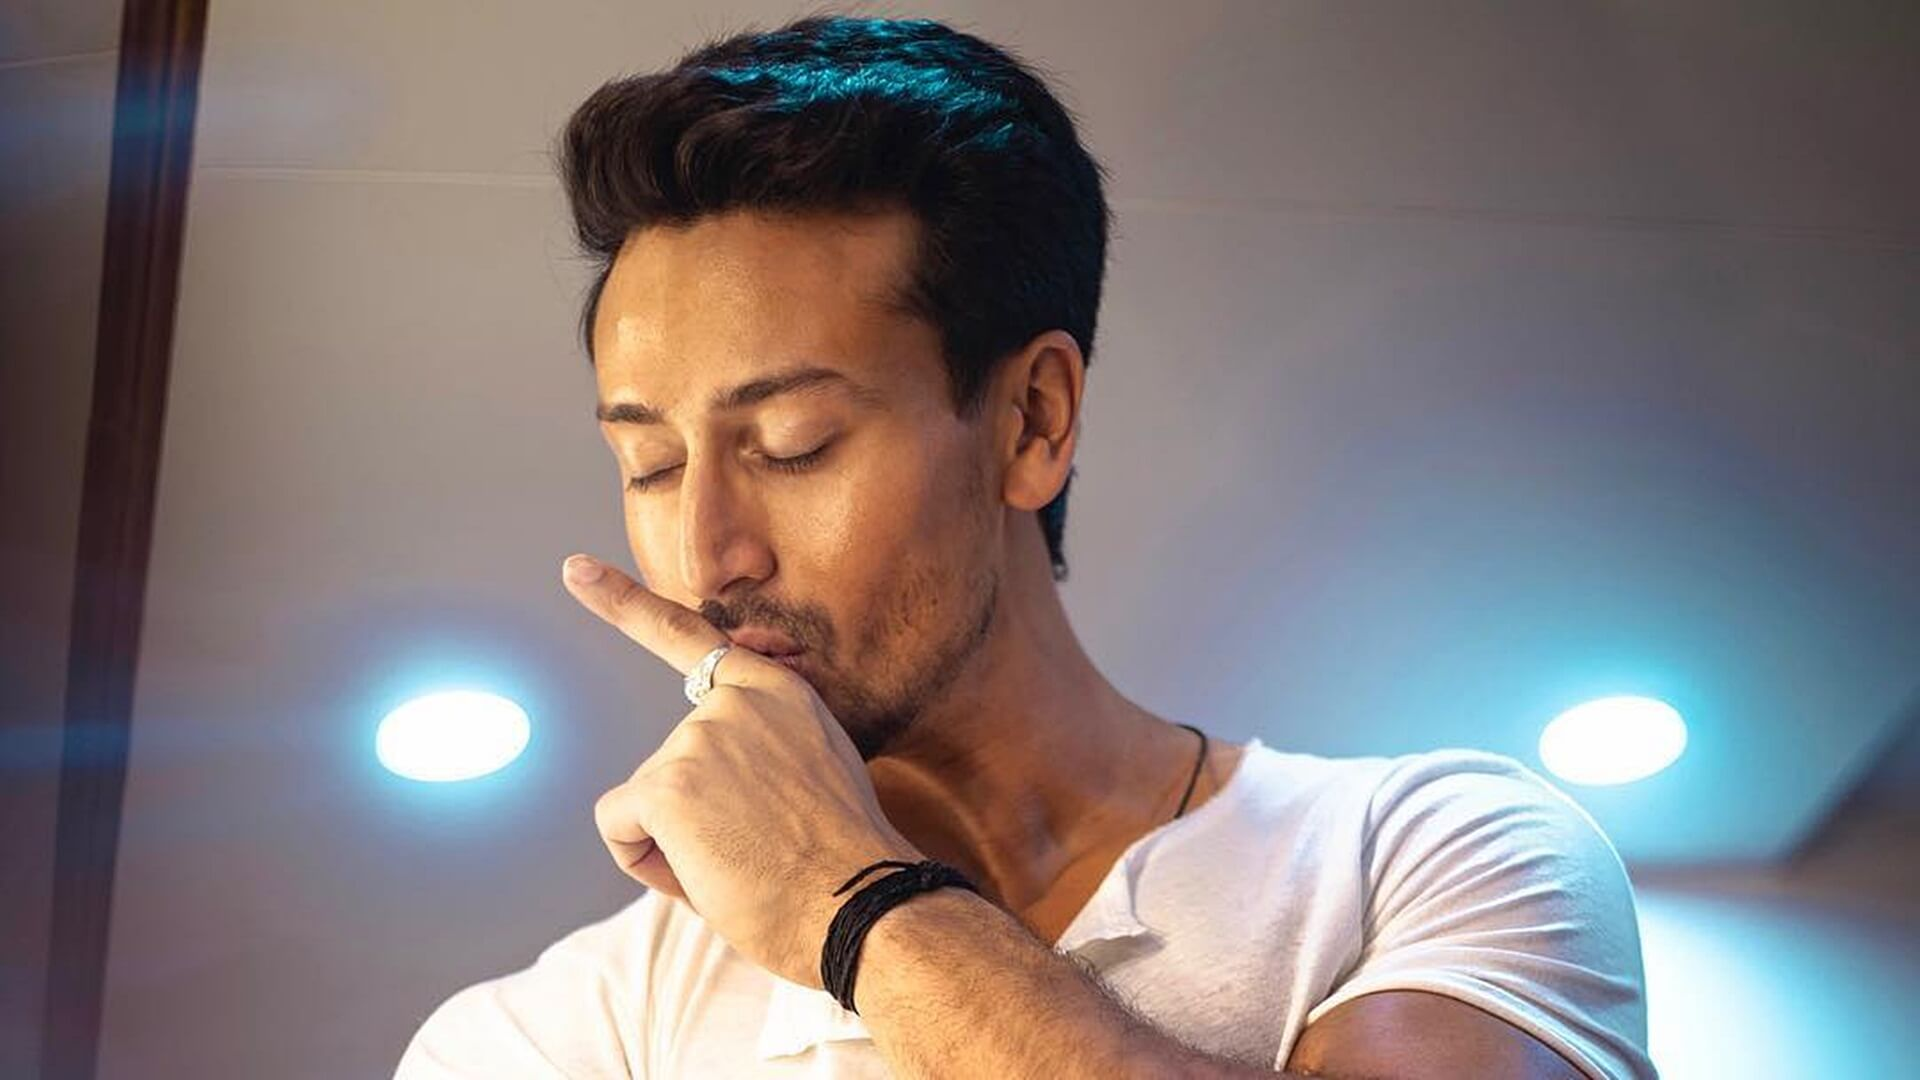 Tiger Shroff Age, Photos(image), Song, Movie, Height, Girlfriend, Sister, Date Of Birth, Net Worth, Biography, Education, Awards, Instagram, Twitter, Facebook, Wiki, Imdb, Youtube (30)